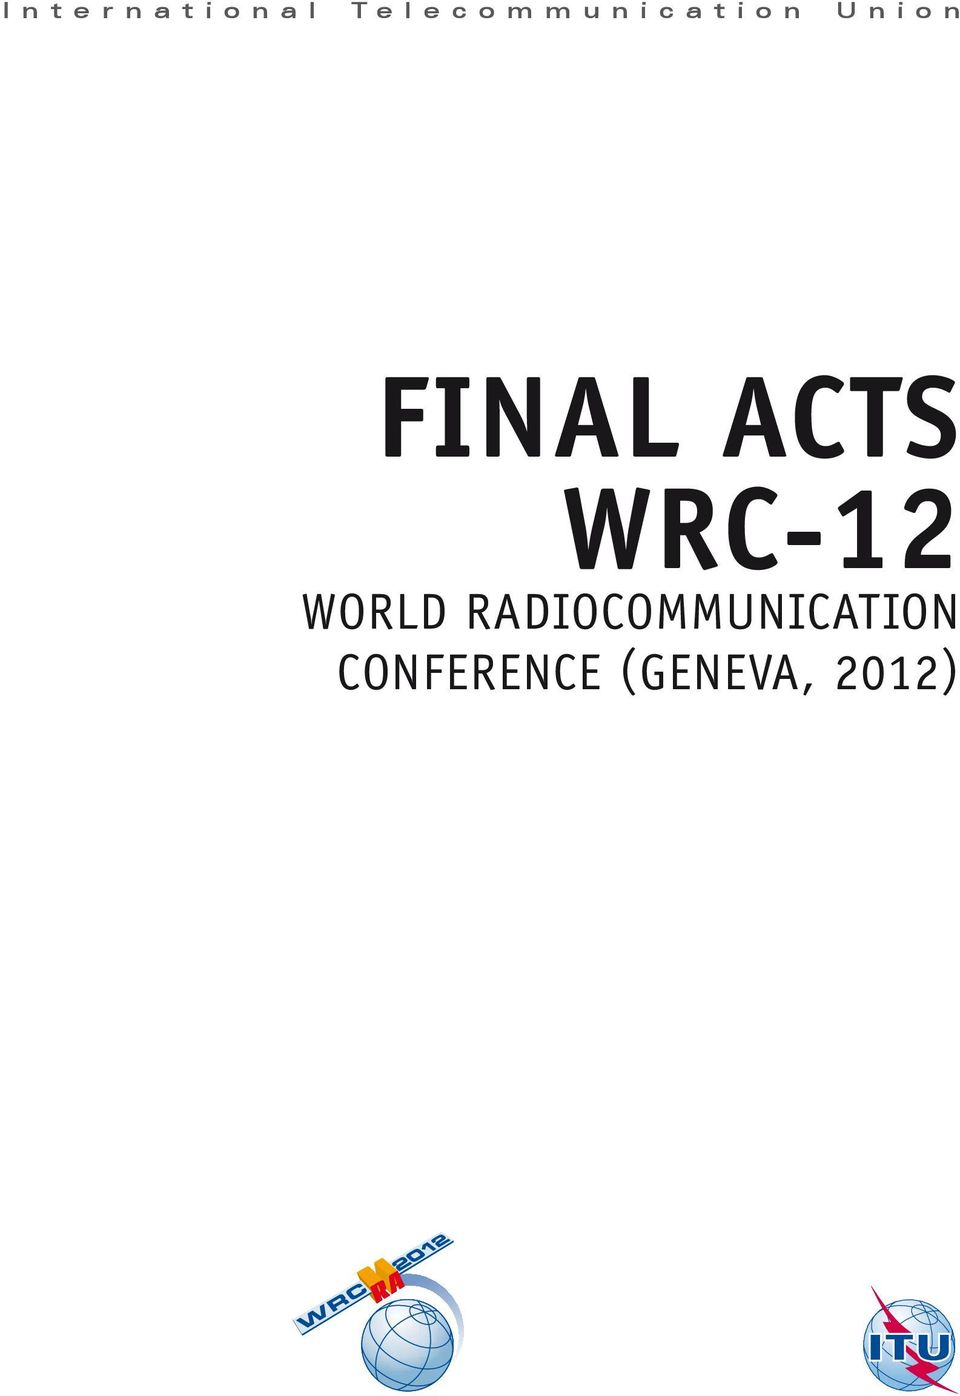 n FINAL ACTS WRC-12 WORLD